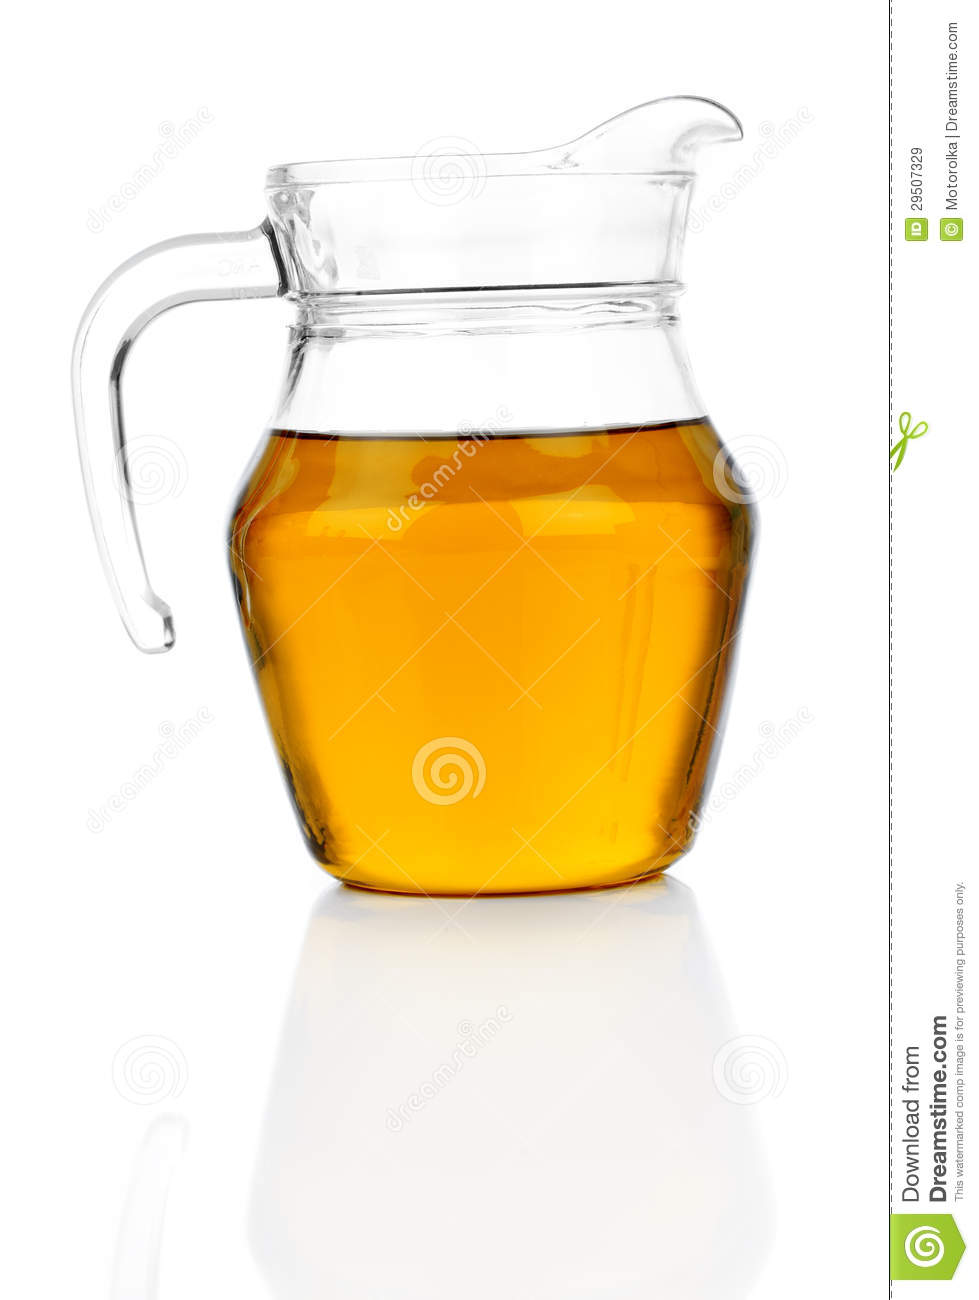 Royalty Free Stock Images Jug Apple Juice Image29507329 on orange juice pitcher